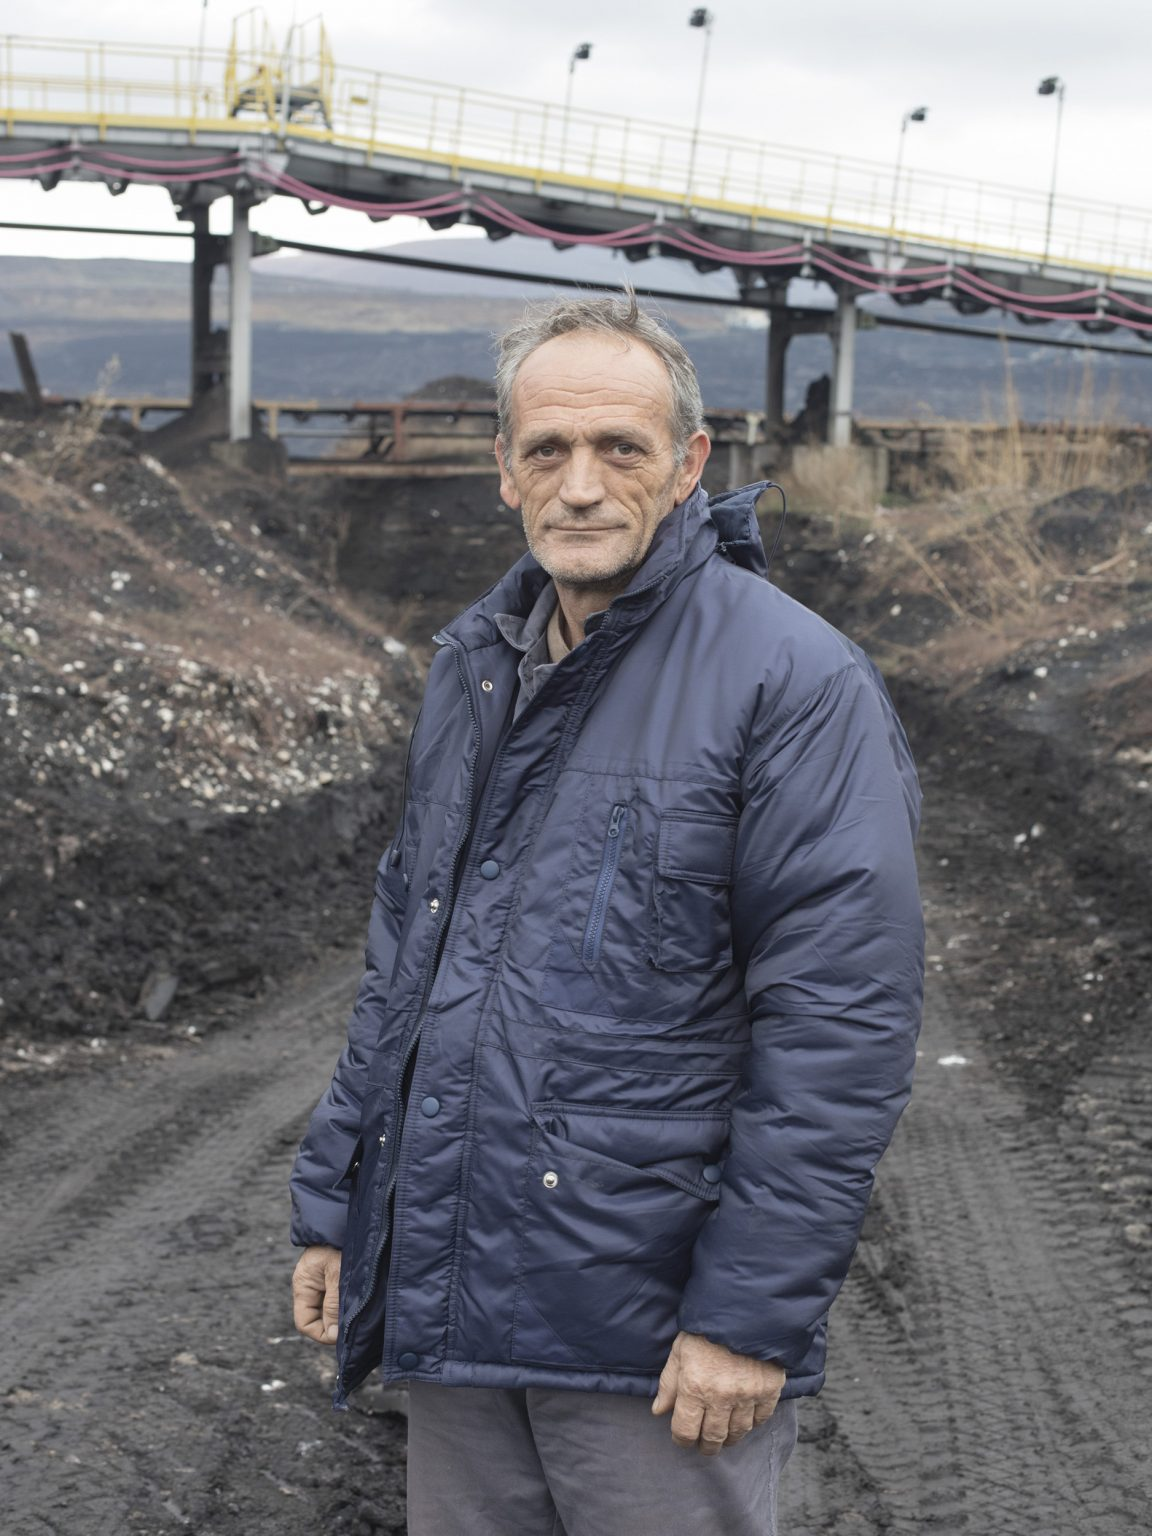 Portrait of Faik Mulaj worker of the Sibovc coal mine located in Obiliq / Obilić, District of Prishtina / Priština. The mine, owned by KEK (Kosovo Energy Corporation) has coal reserves amounting to 1 billion tonnes of lignite, one of the largest lignite reserves in Europe.